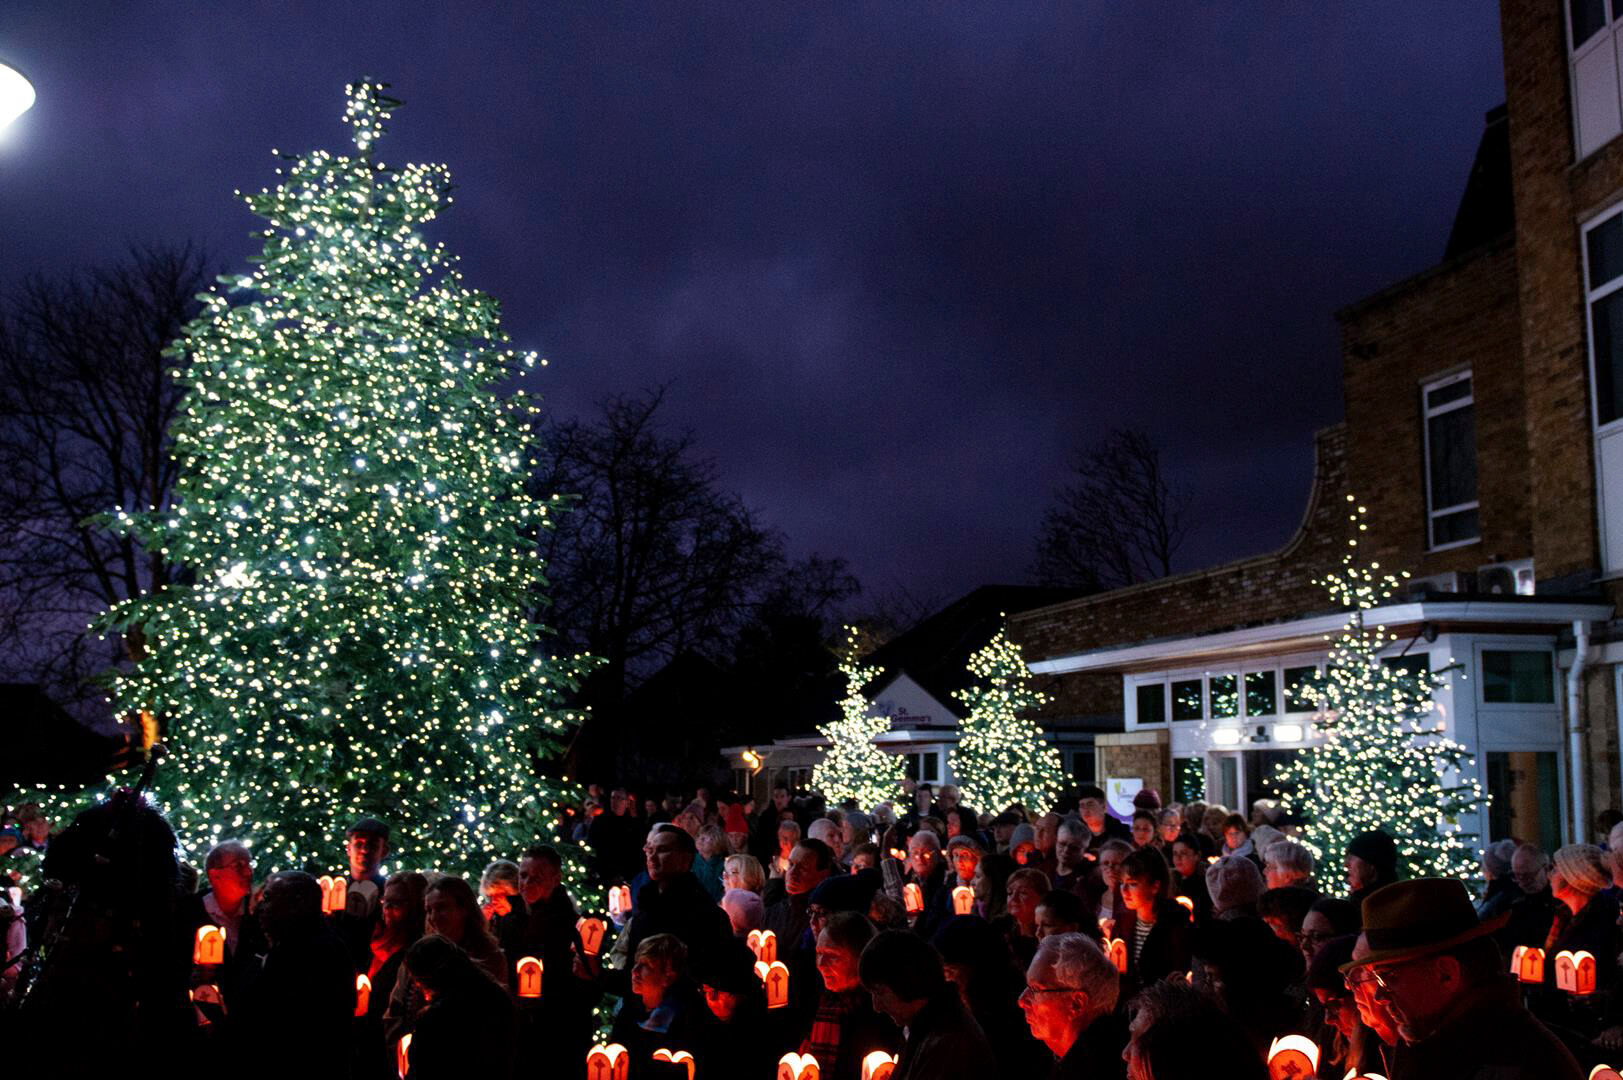 People gathered with lanterns; the sky is dark and bright lights are shining on Christmas trees